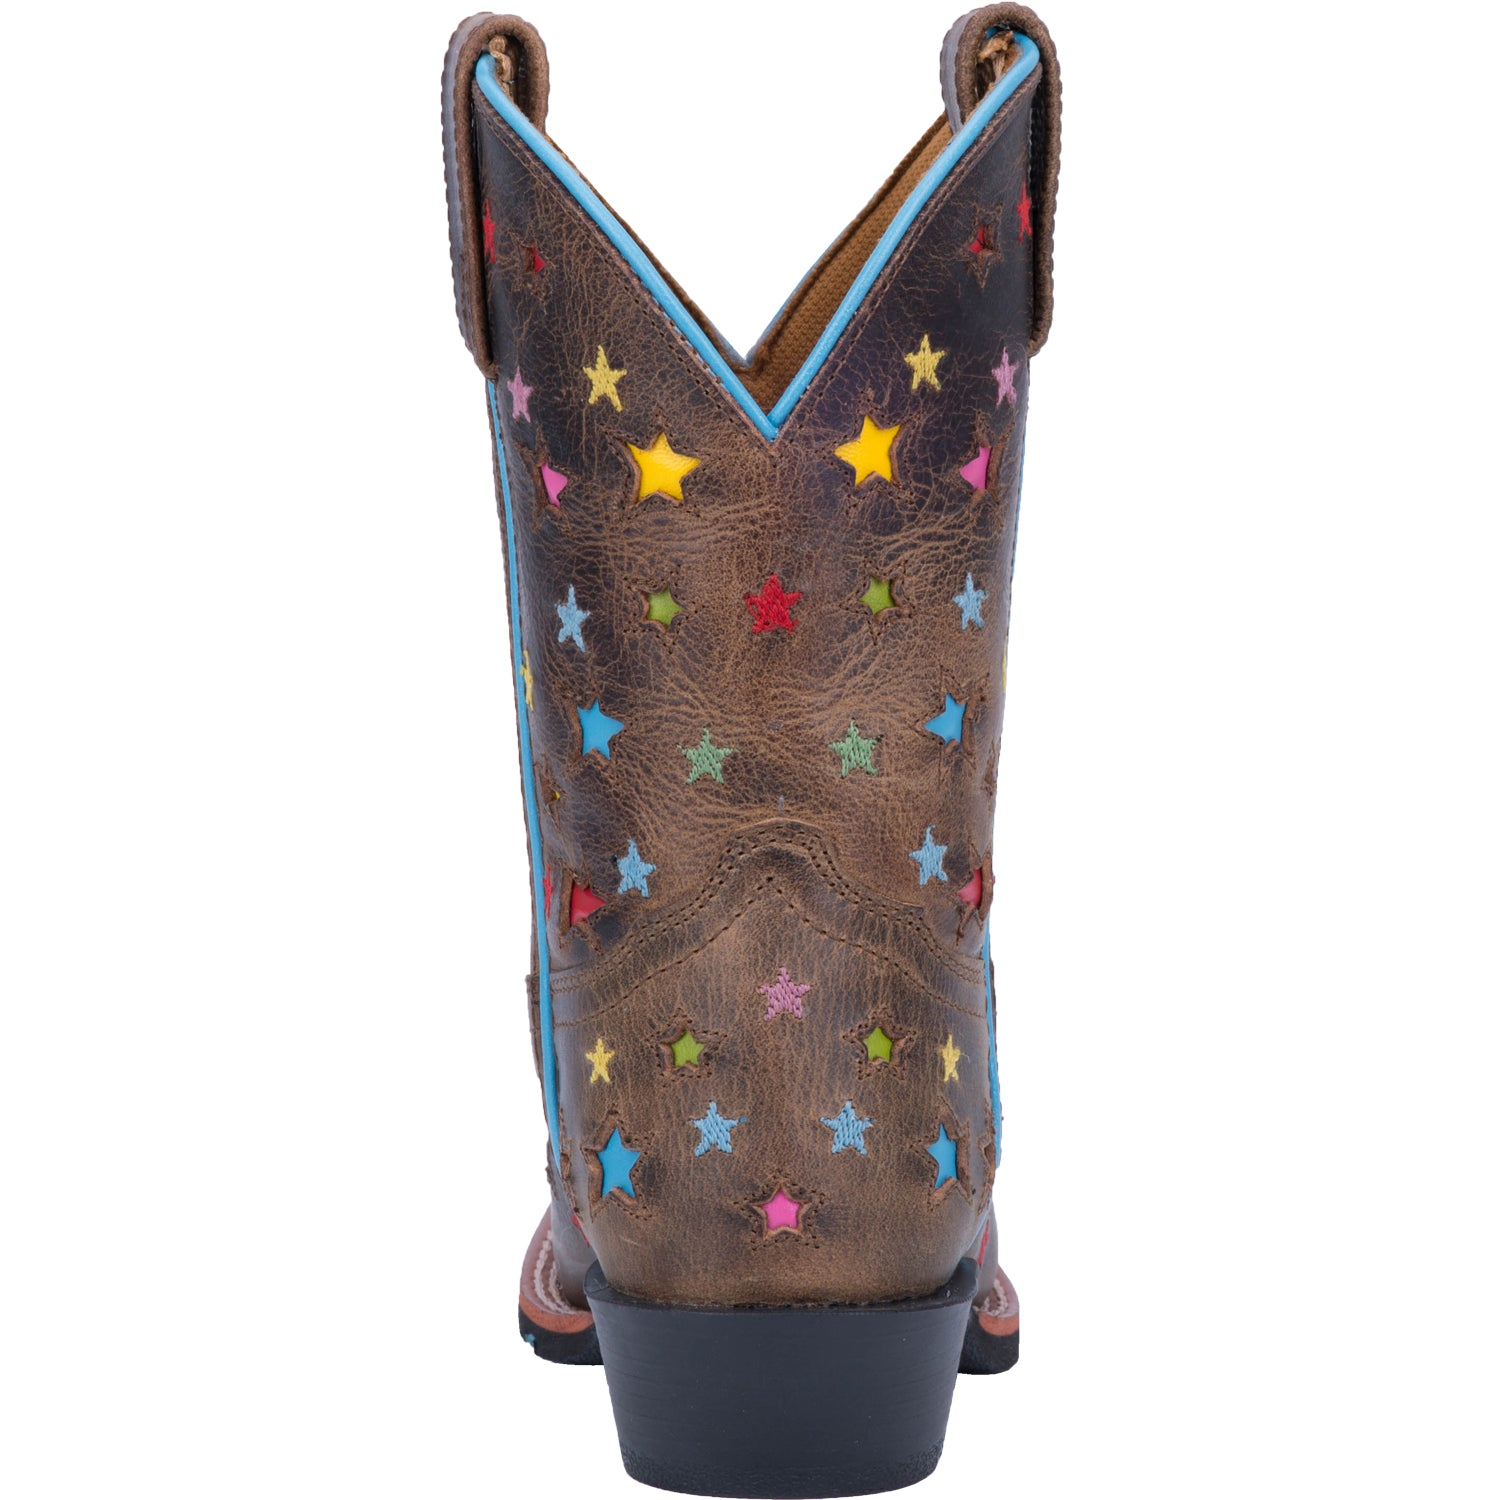 STARLETT LEATHER CHILDREN'S BOOT 15521811136554